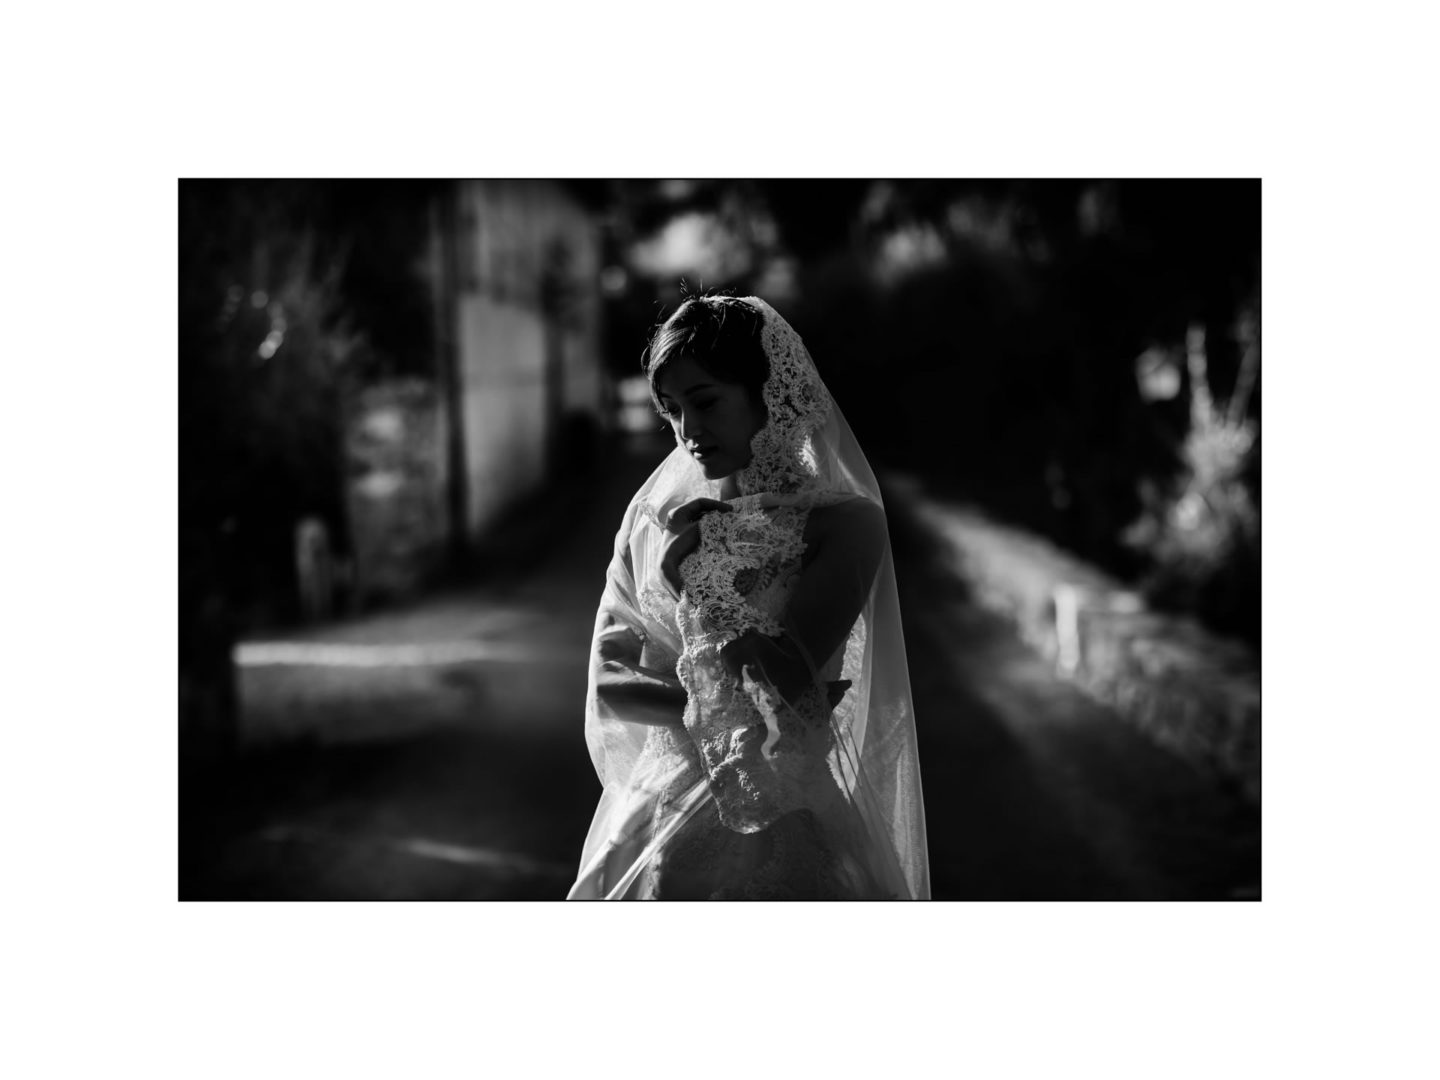 castello-di-meleto-david-bastianoni-photographer-00011 :: Black and white wedding_ Castello di Meleto :: Luxury wedding photography - 10 :: castello-di-meleto-david-bastianoni-photographer-00011